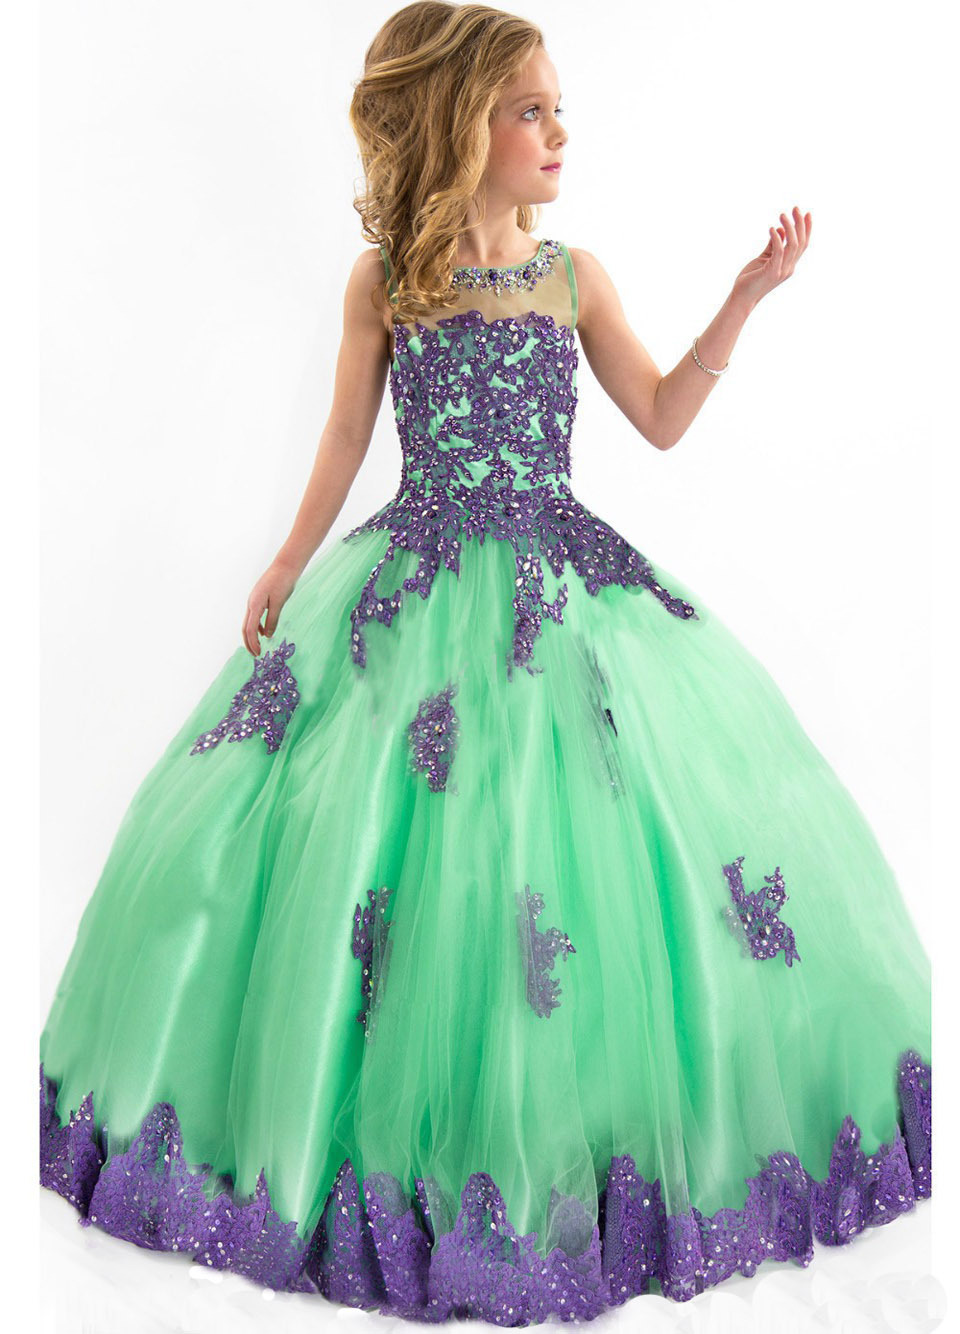 Cheap flower girls dresses find flower girls dresses deals on get quotations beaded tulle purple applique embroidery girls glitz crystal dresses little girls gown gorgeous pageant dresses for izmirmasajfo